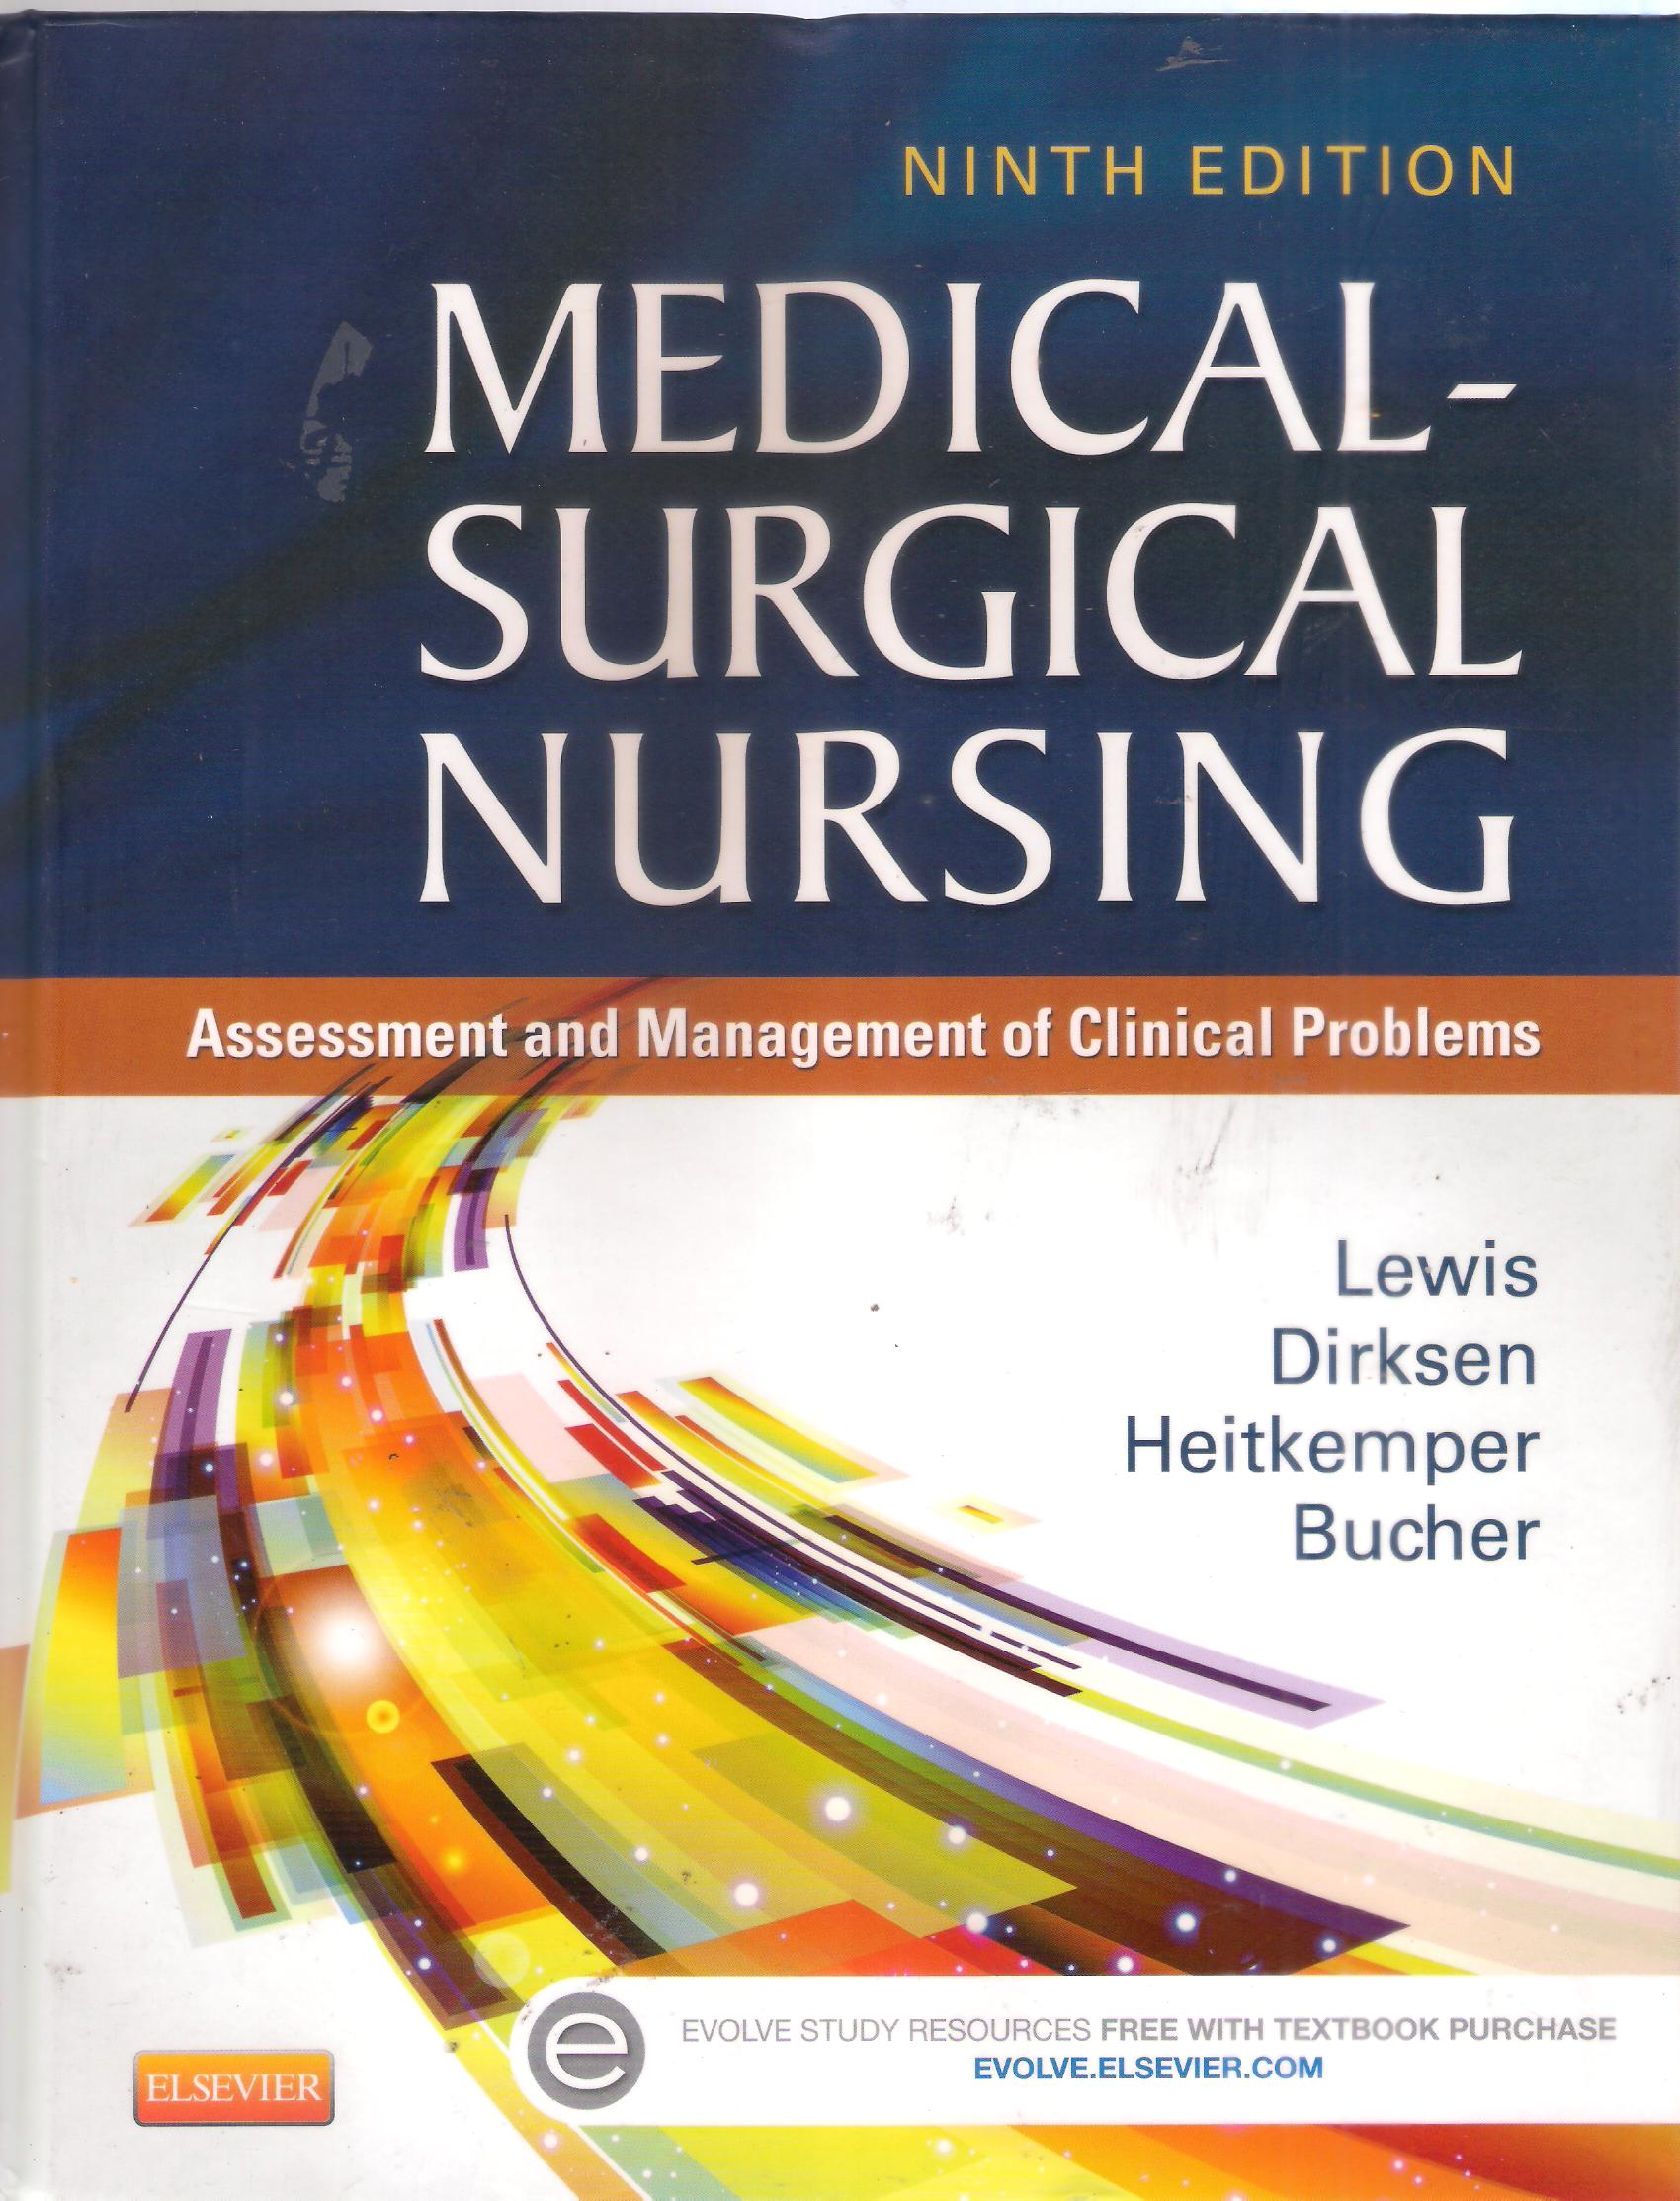 Medical Surgical Nursing: assesment and management of clinical problems